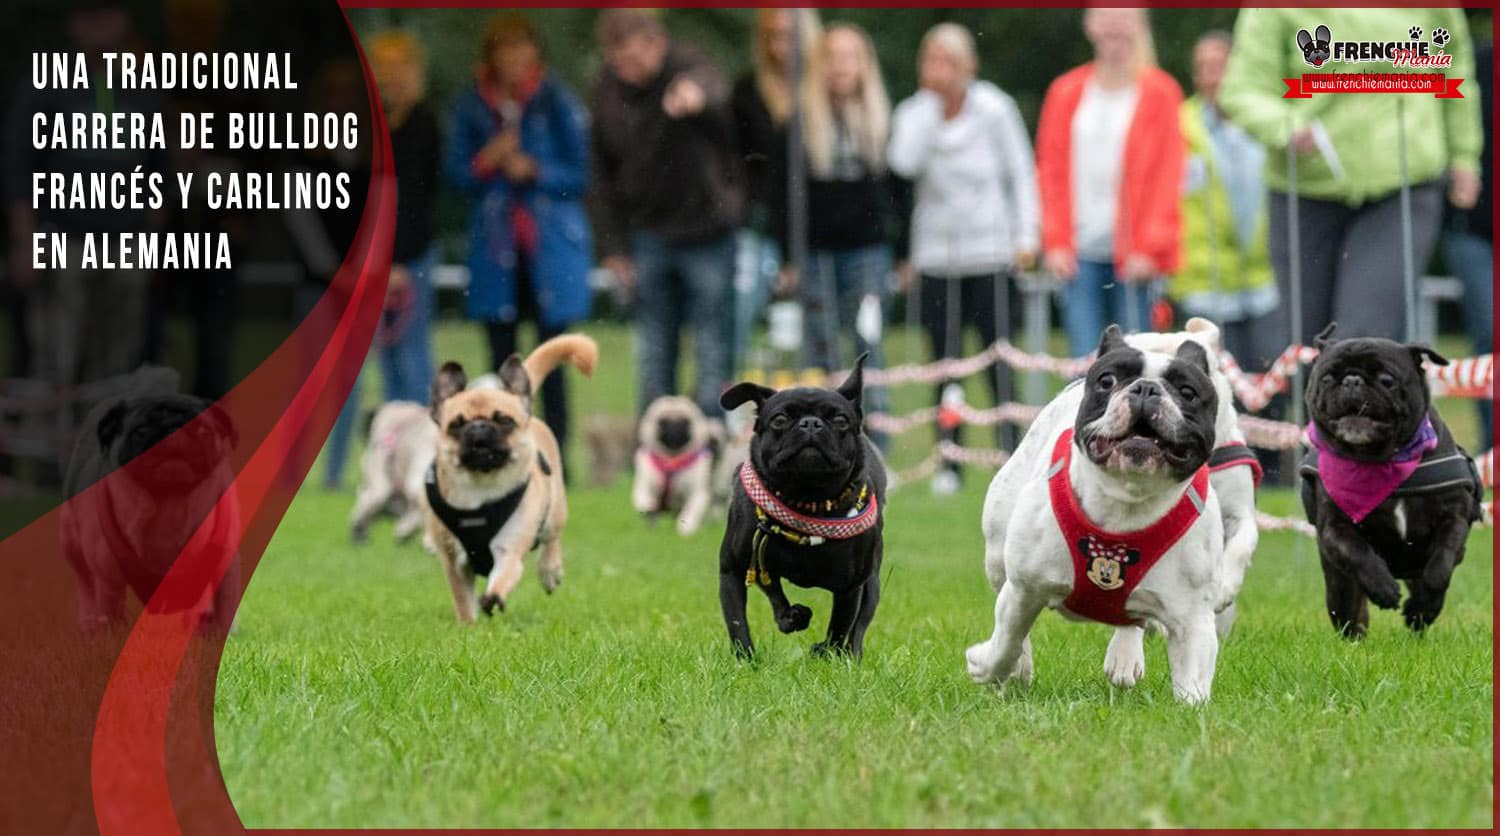 carrera perros bulldog frances carlinos alemania